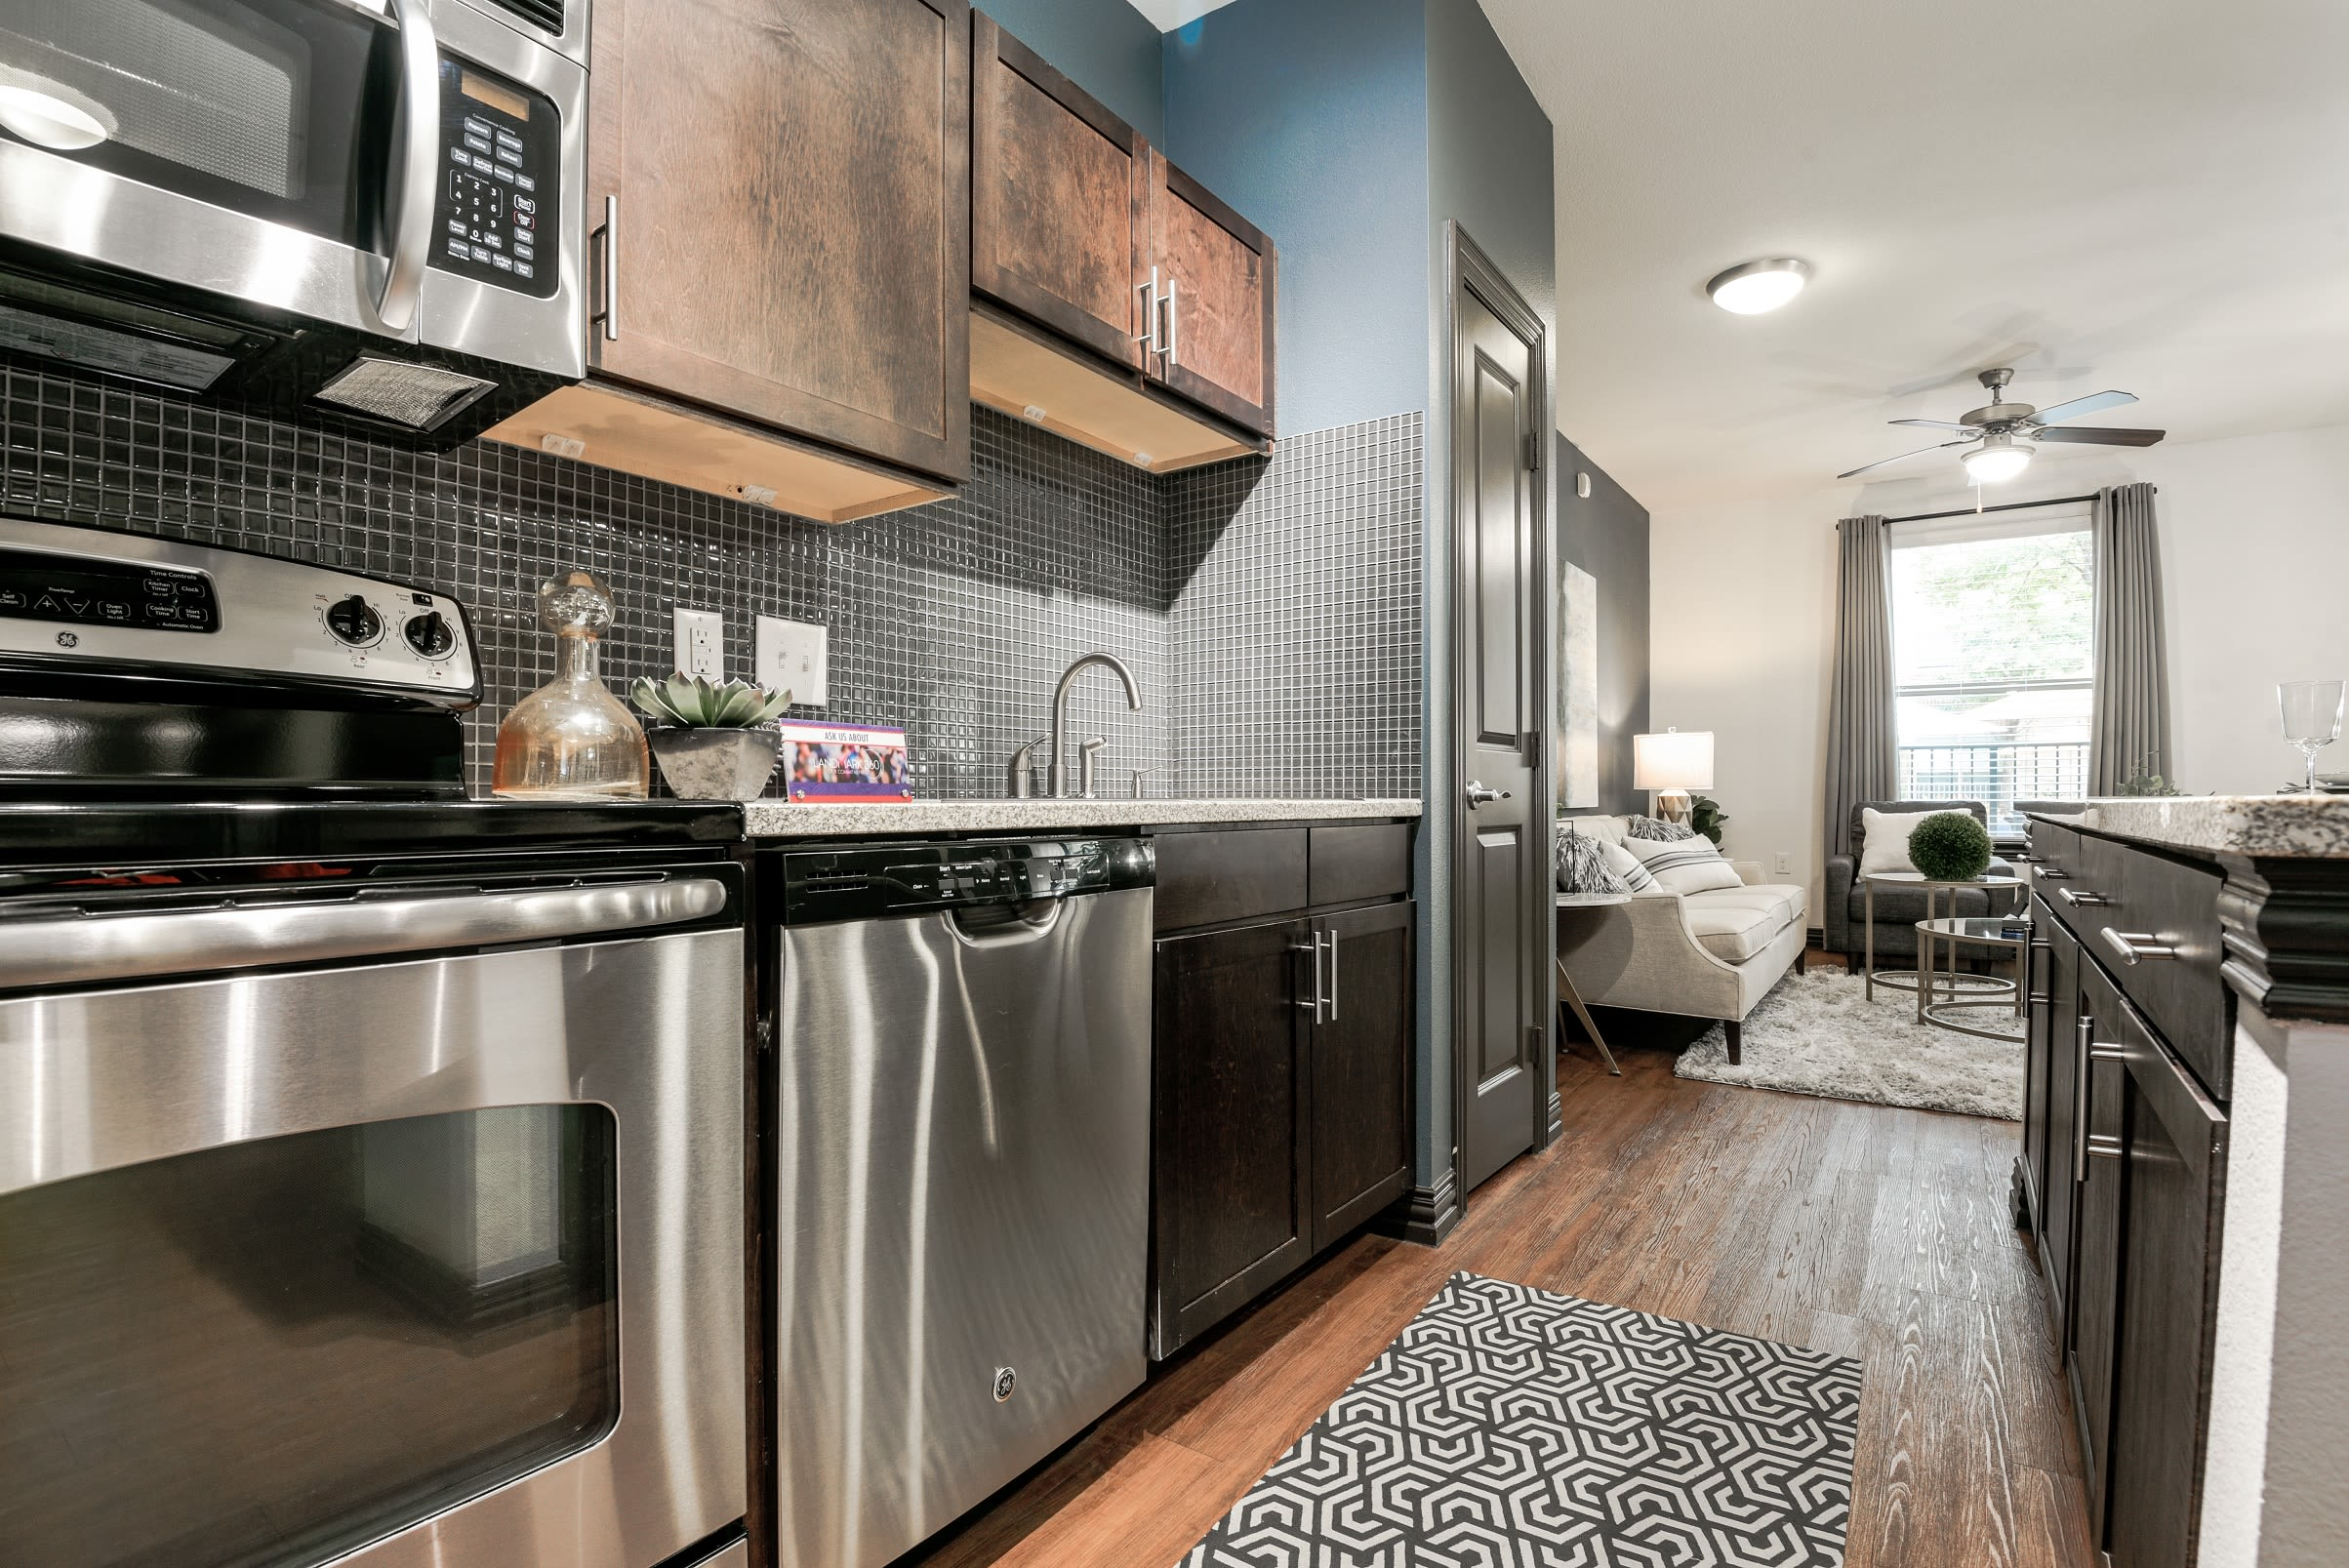 Luxurious kitchen with wood flooring and wood cabinetry at The Blvd in Irving, Texas